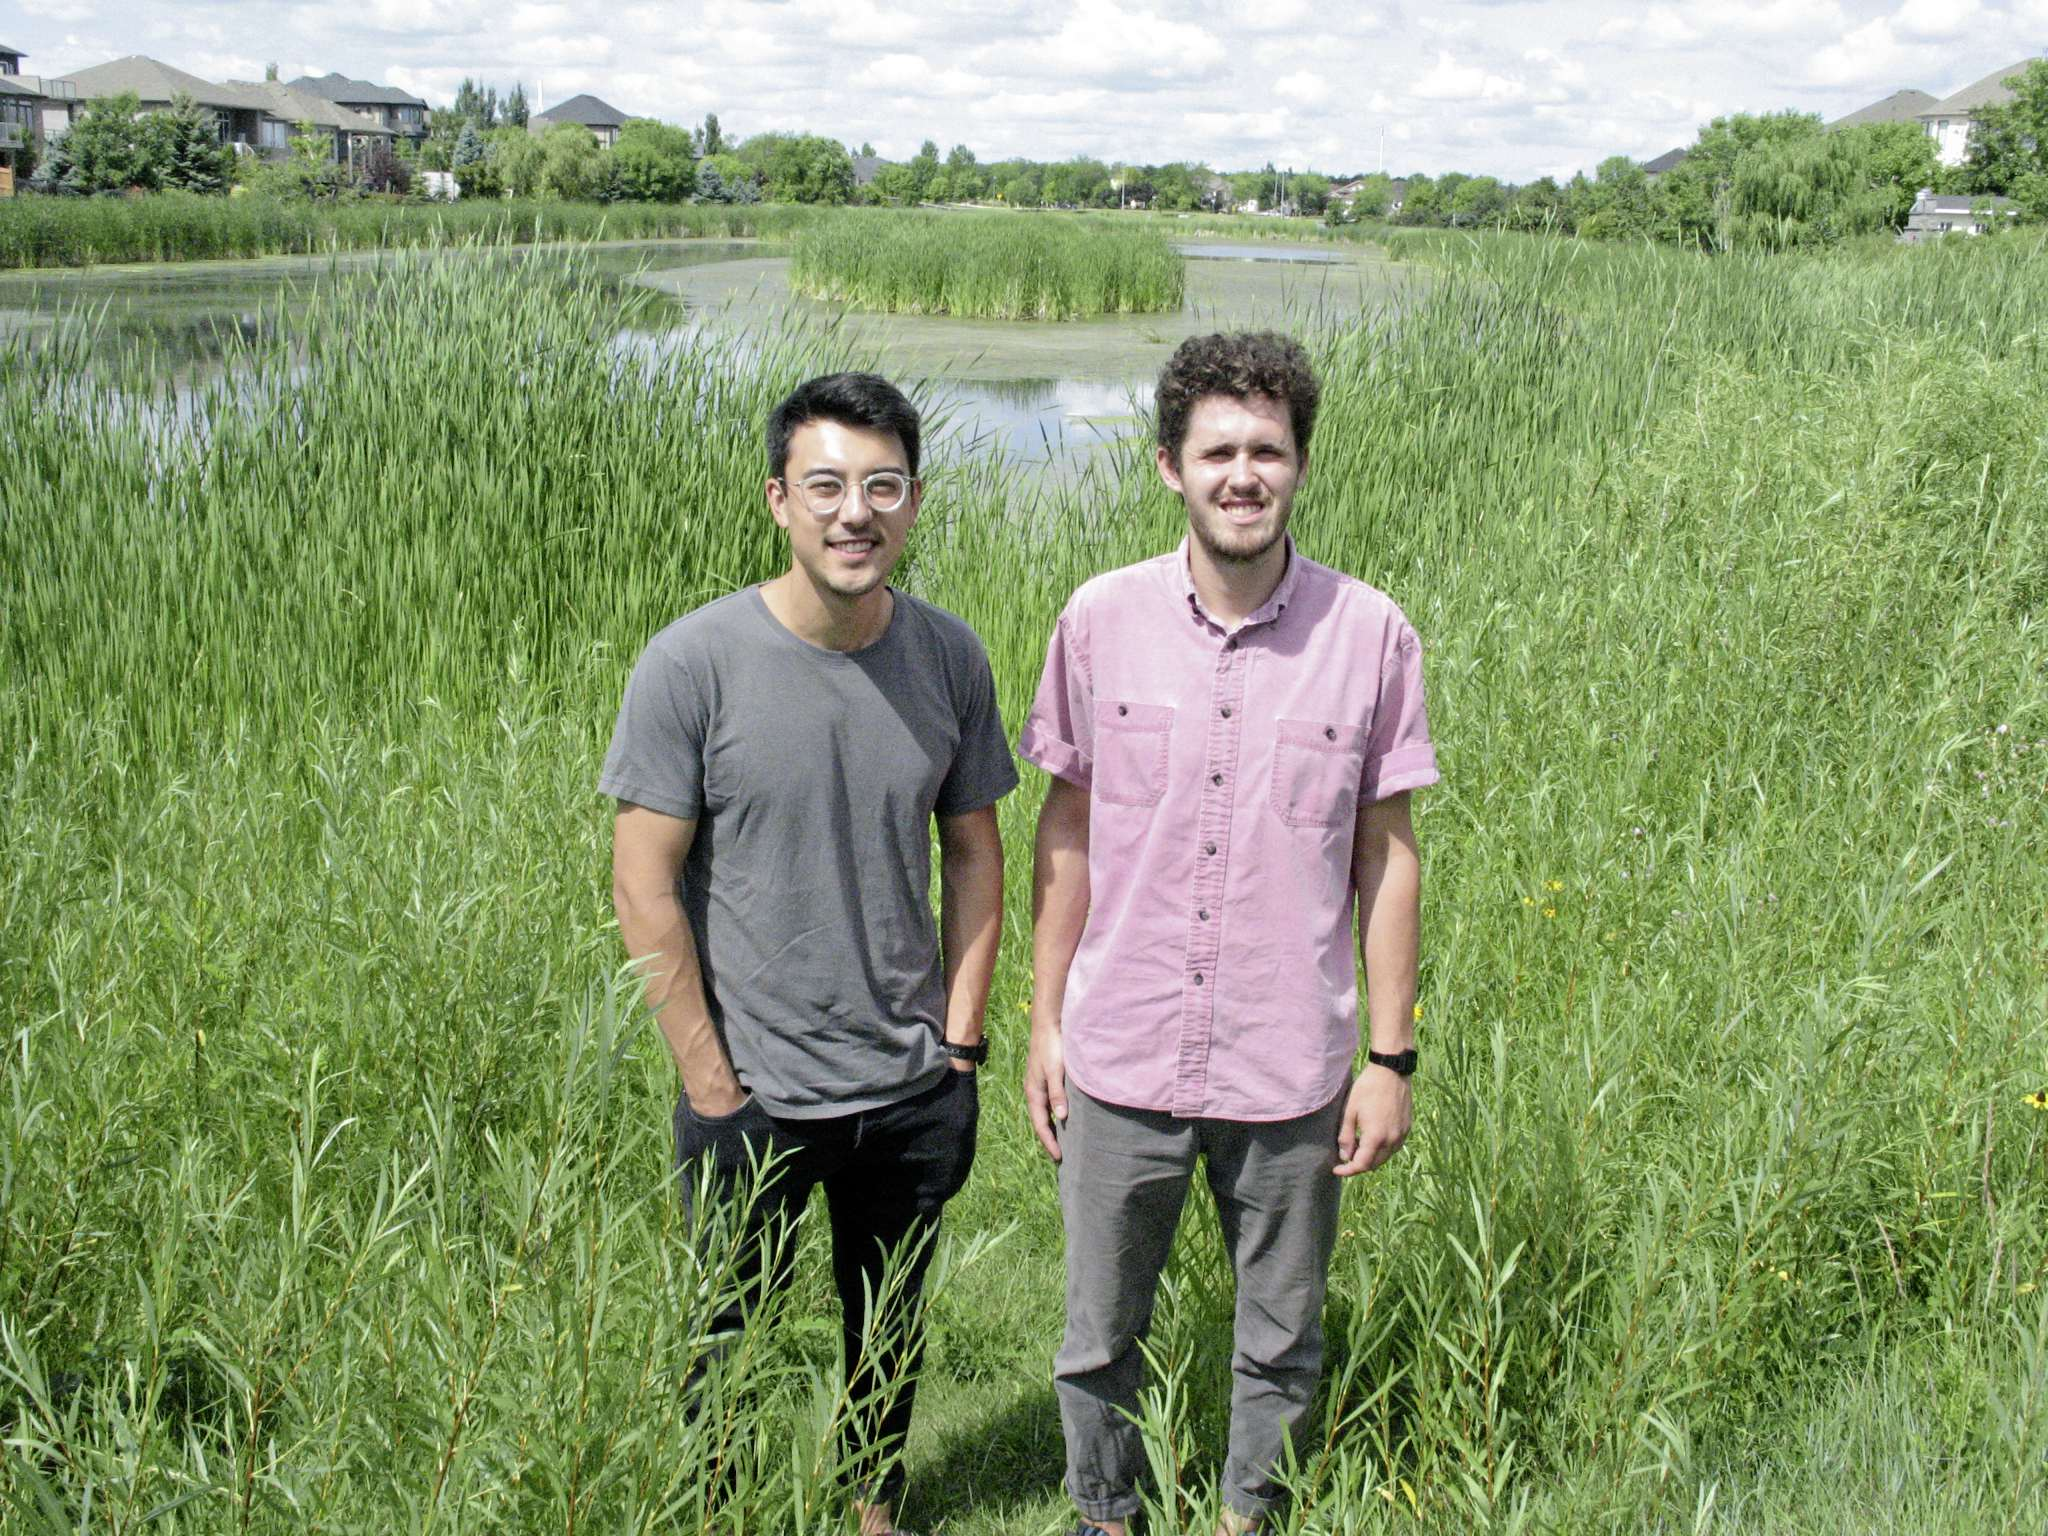 Julien Koga and Alec Massé, pictured here in Royalwood recently, are finalists in the 2020 Lake Winnipeg AquaHacking Challenge, which is being hosted by the International Institute for Sustainable Development.